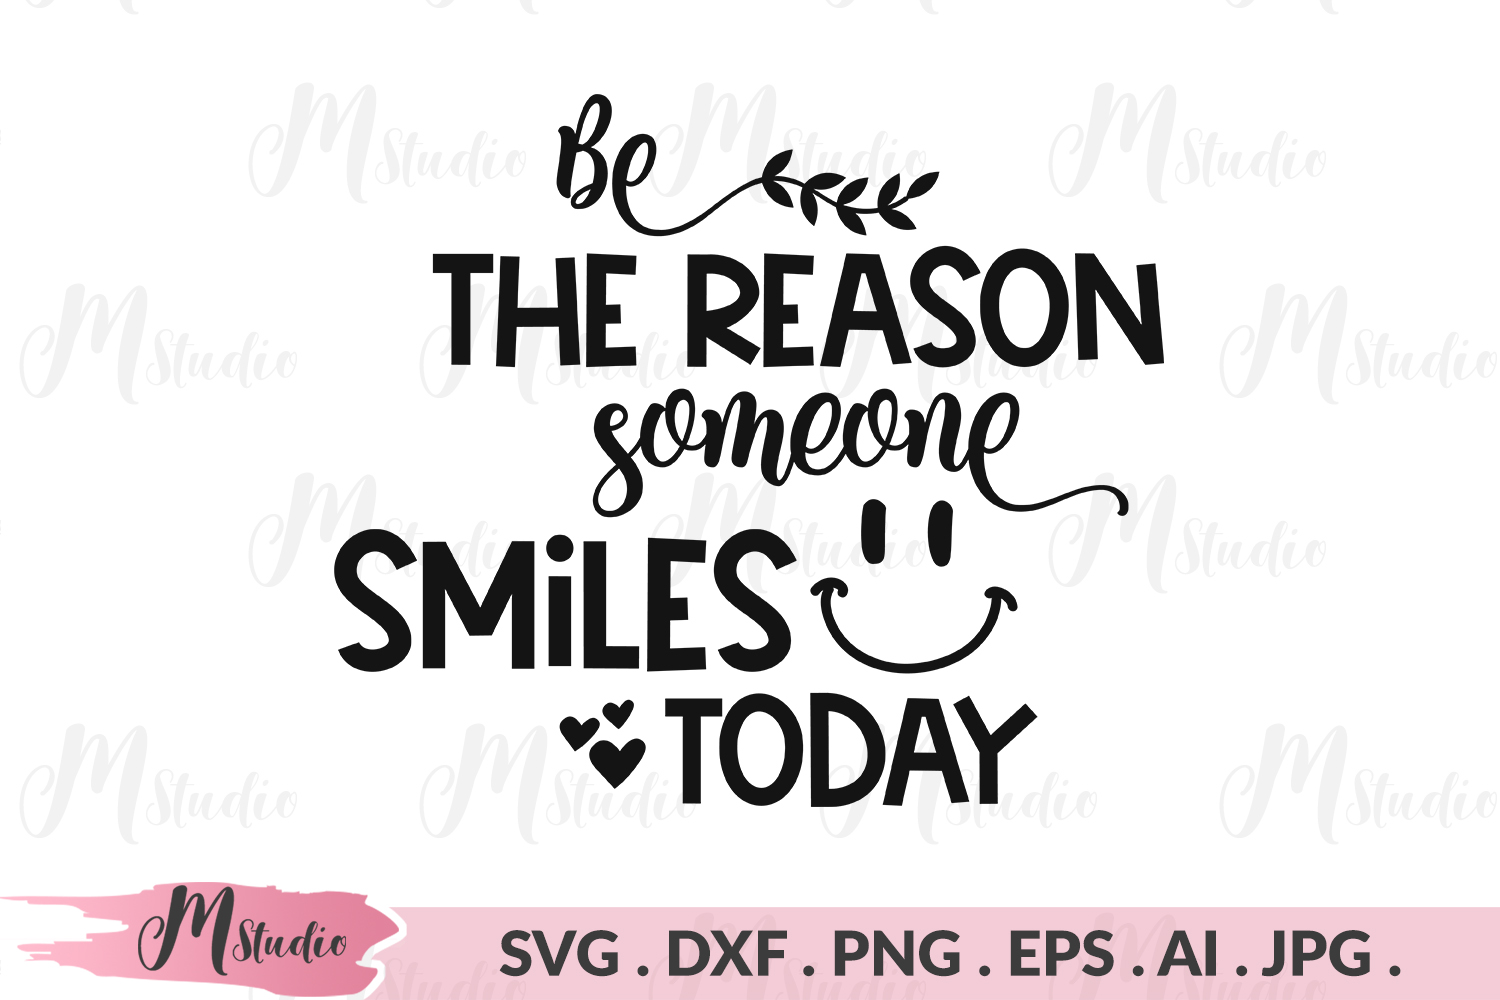 Be the reason someone smiles today svg. example image 1